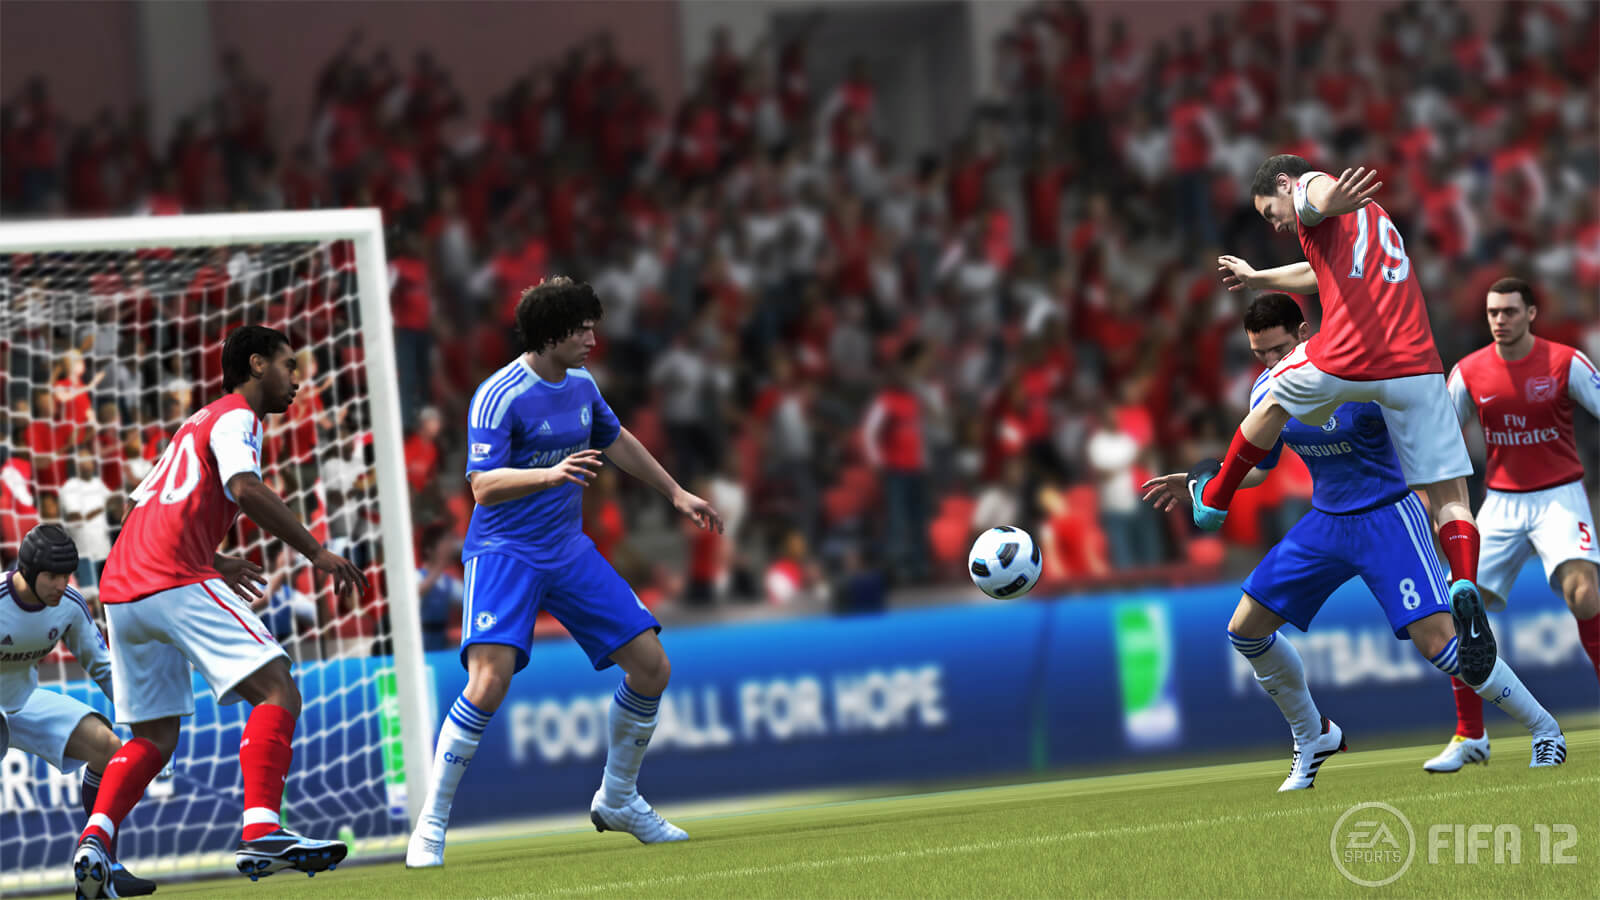 FIFA 12 Cheats and Trainers